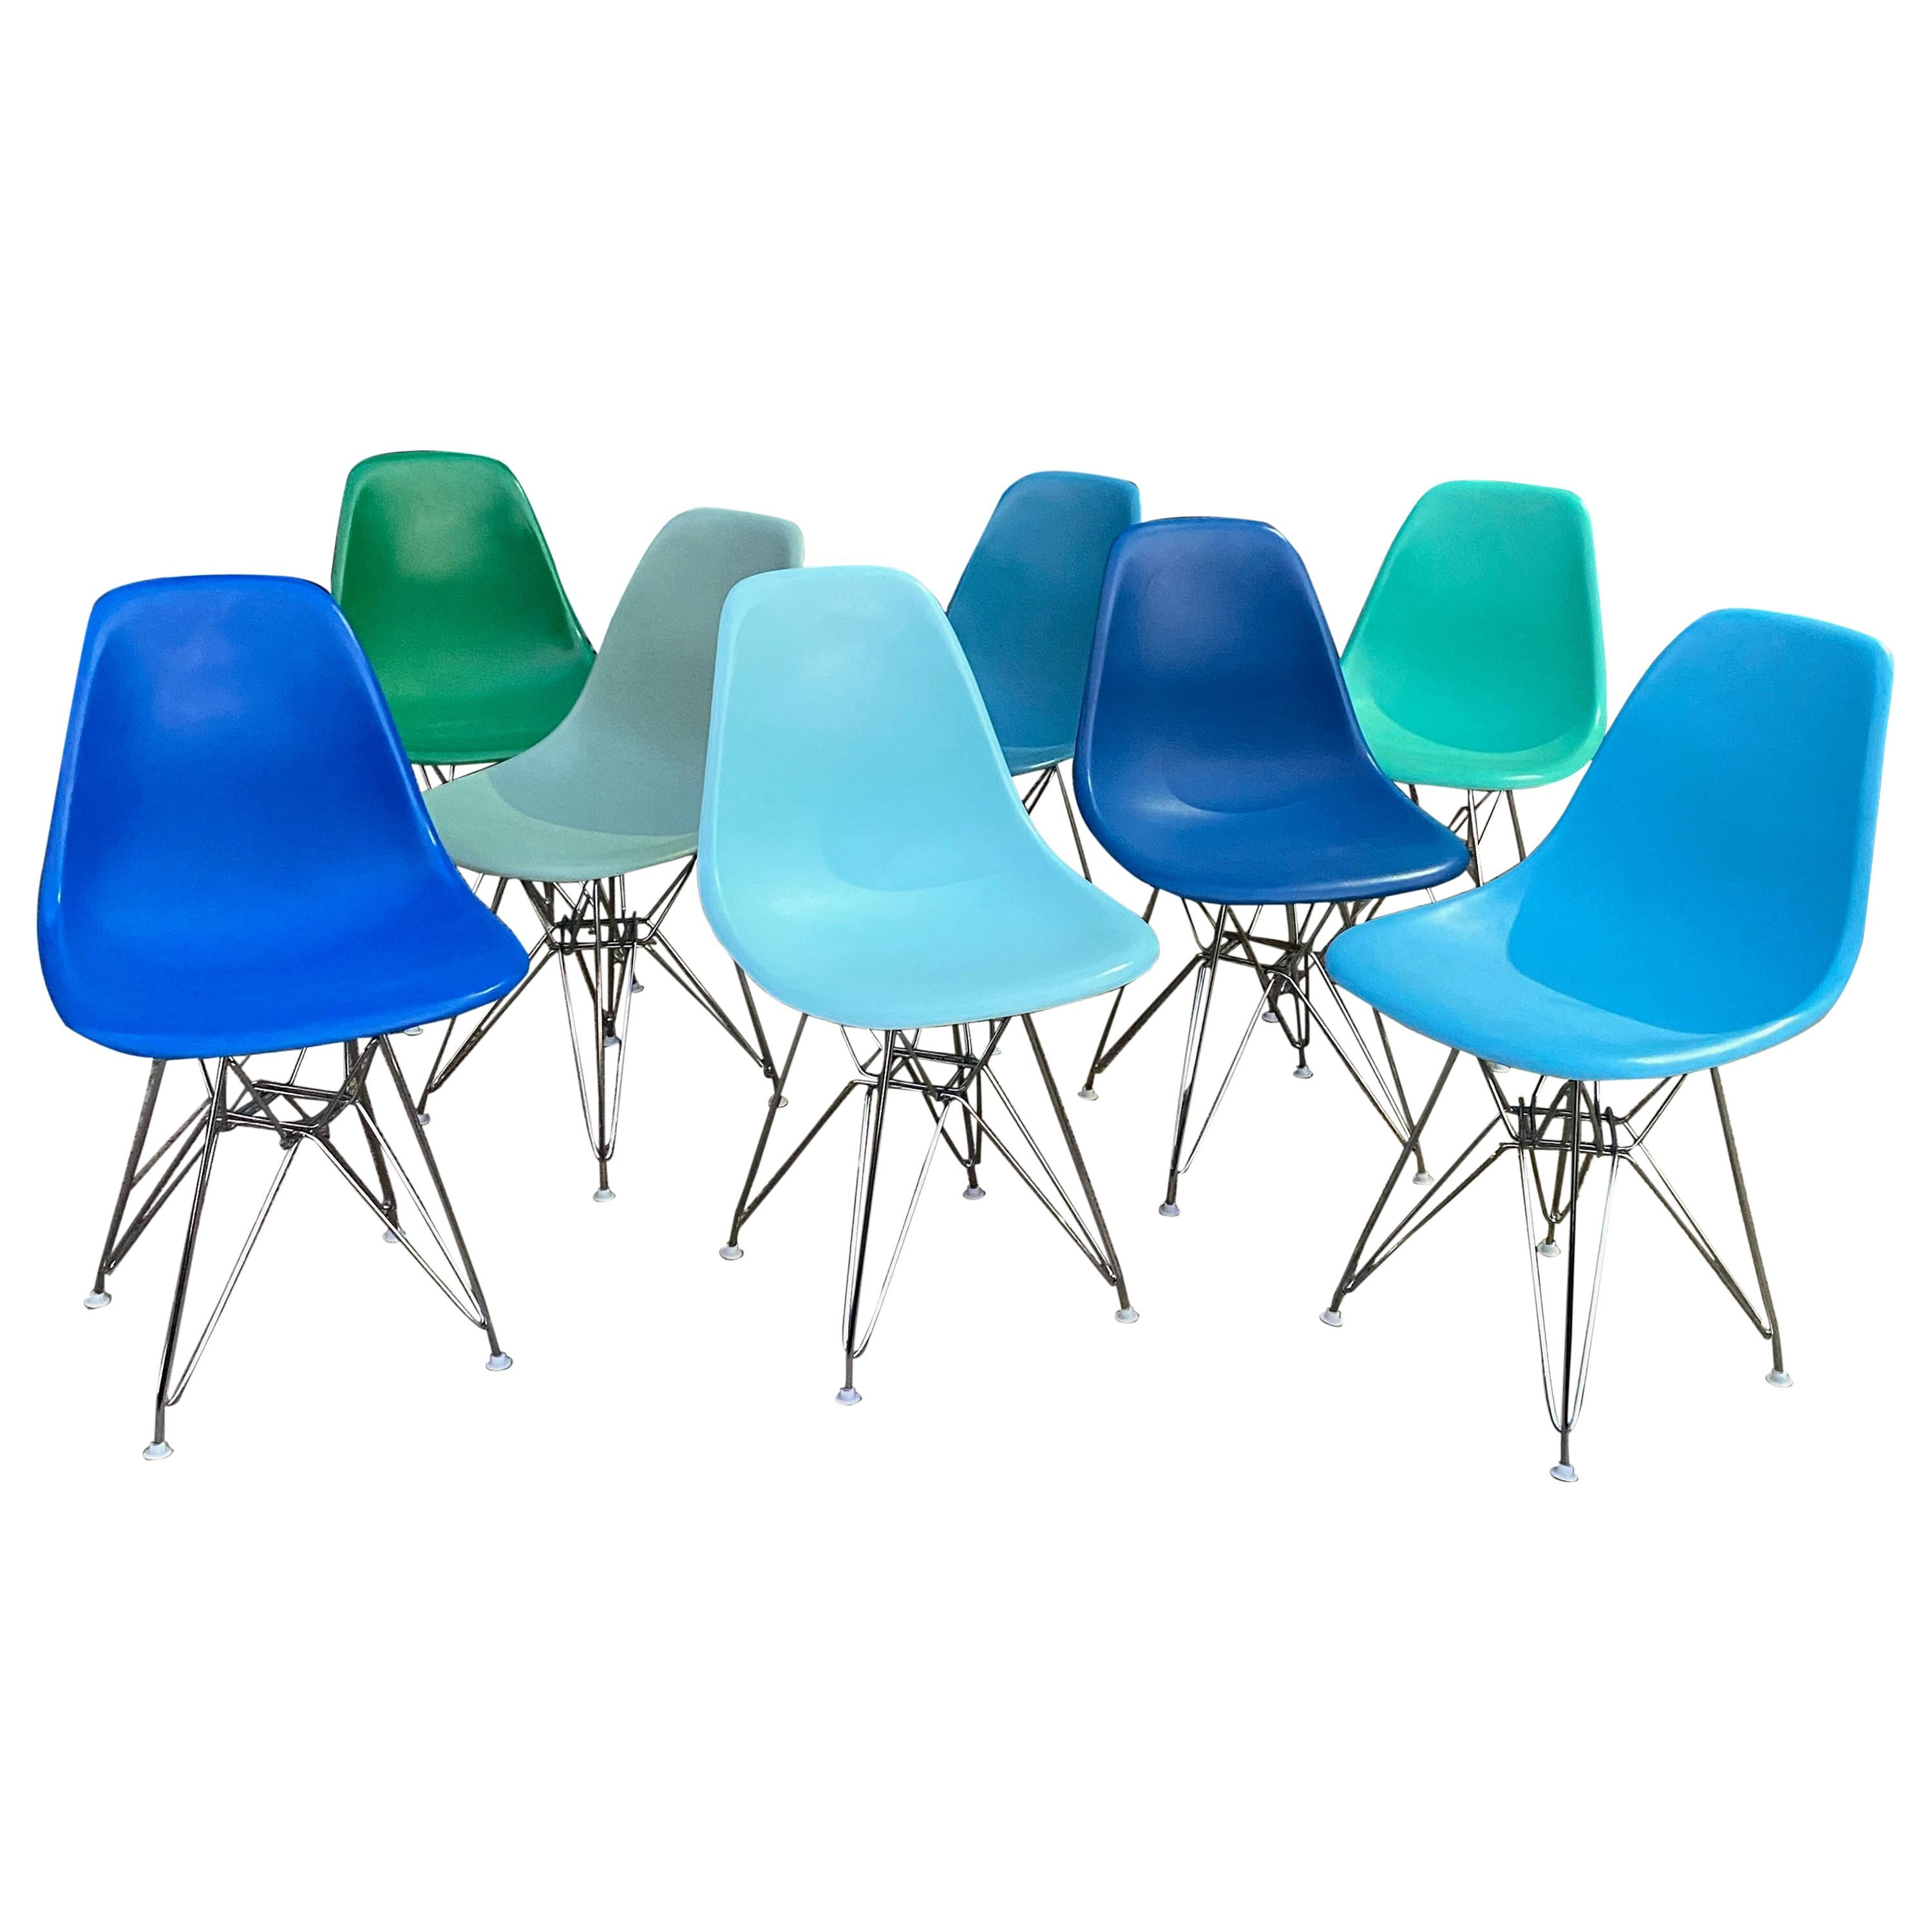 Set of 8 Herman Miller Eames Dining Chairs with Eiffel Base